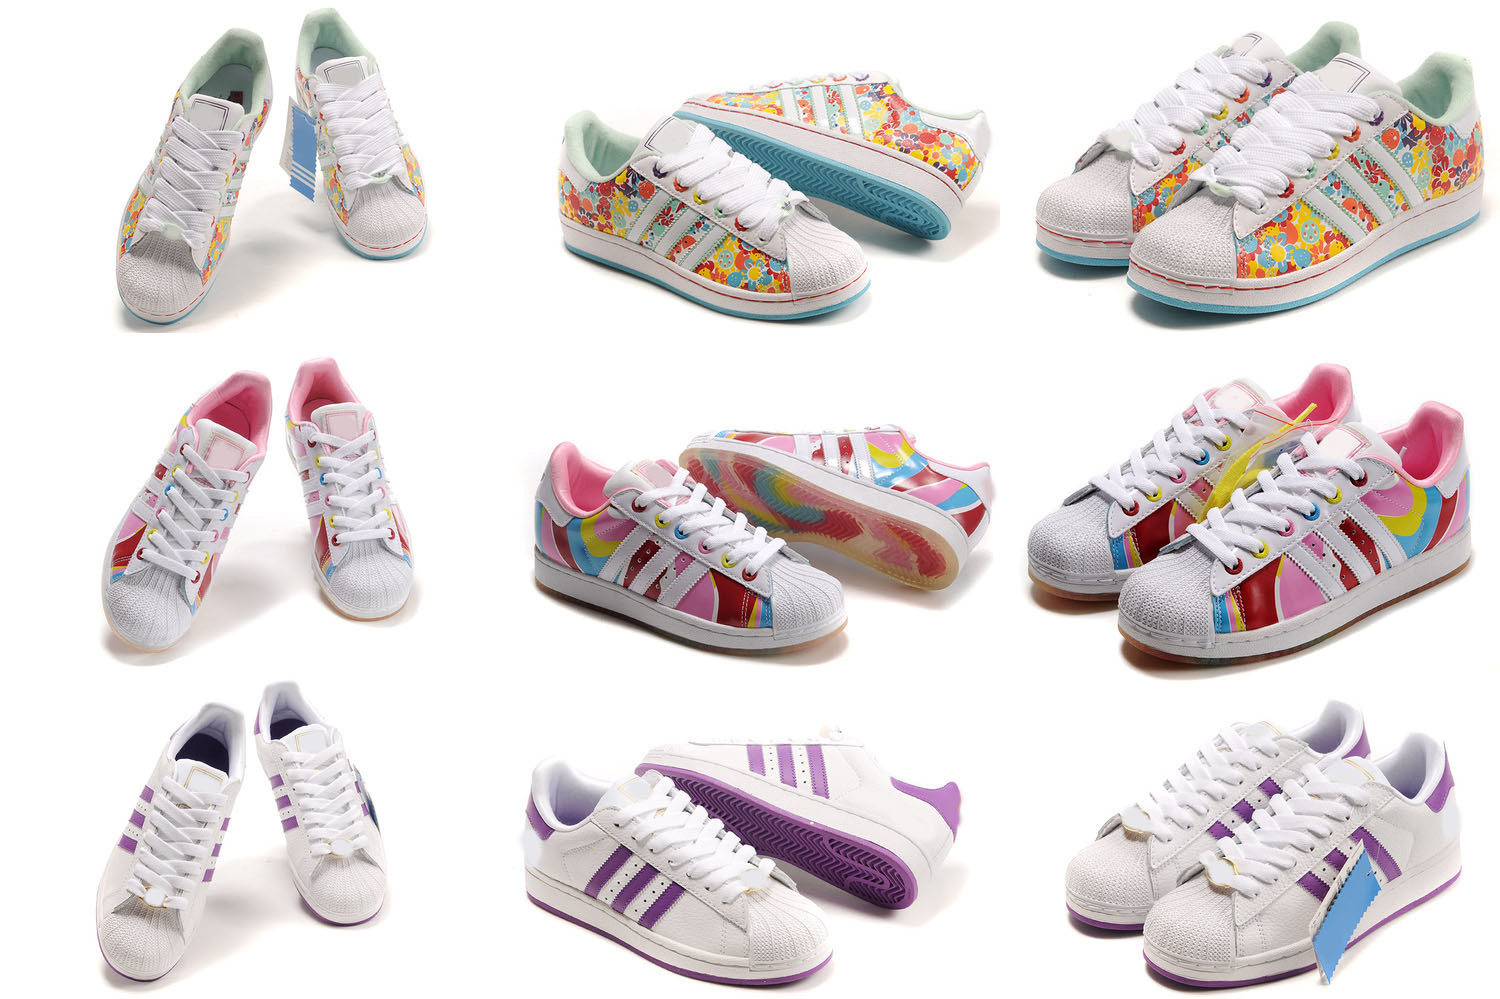 Womens sneakers | Piperlime - Free Shipping & Returns